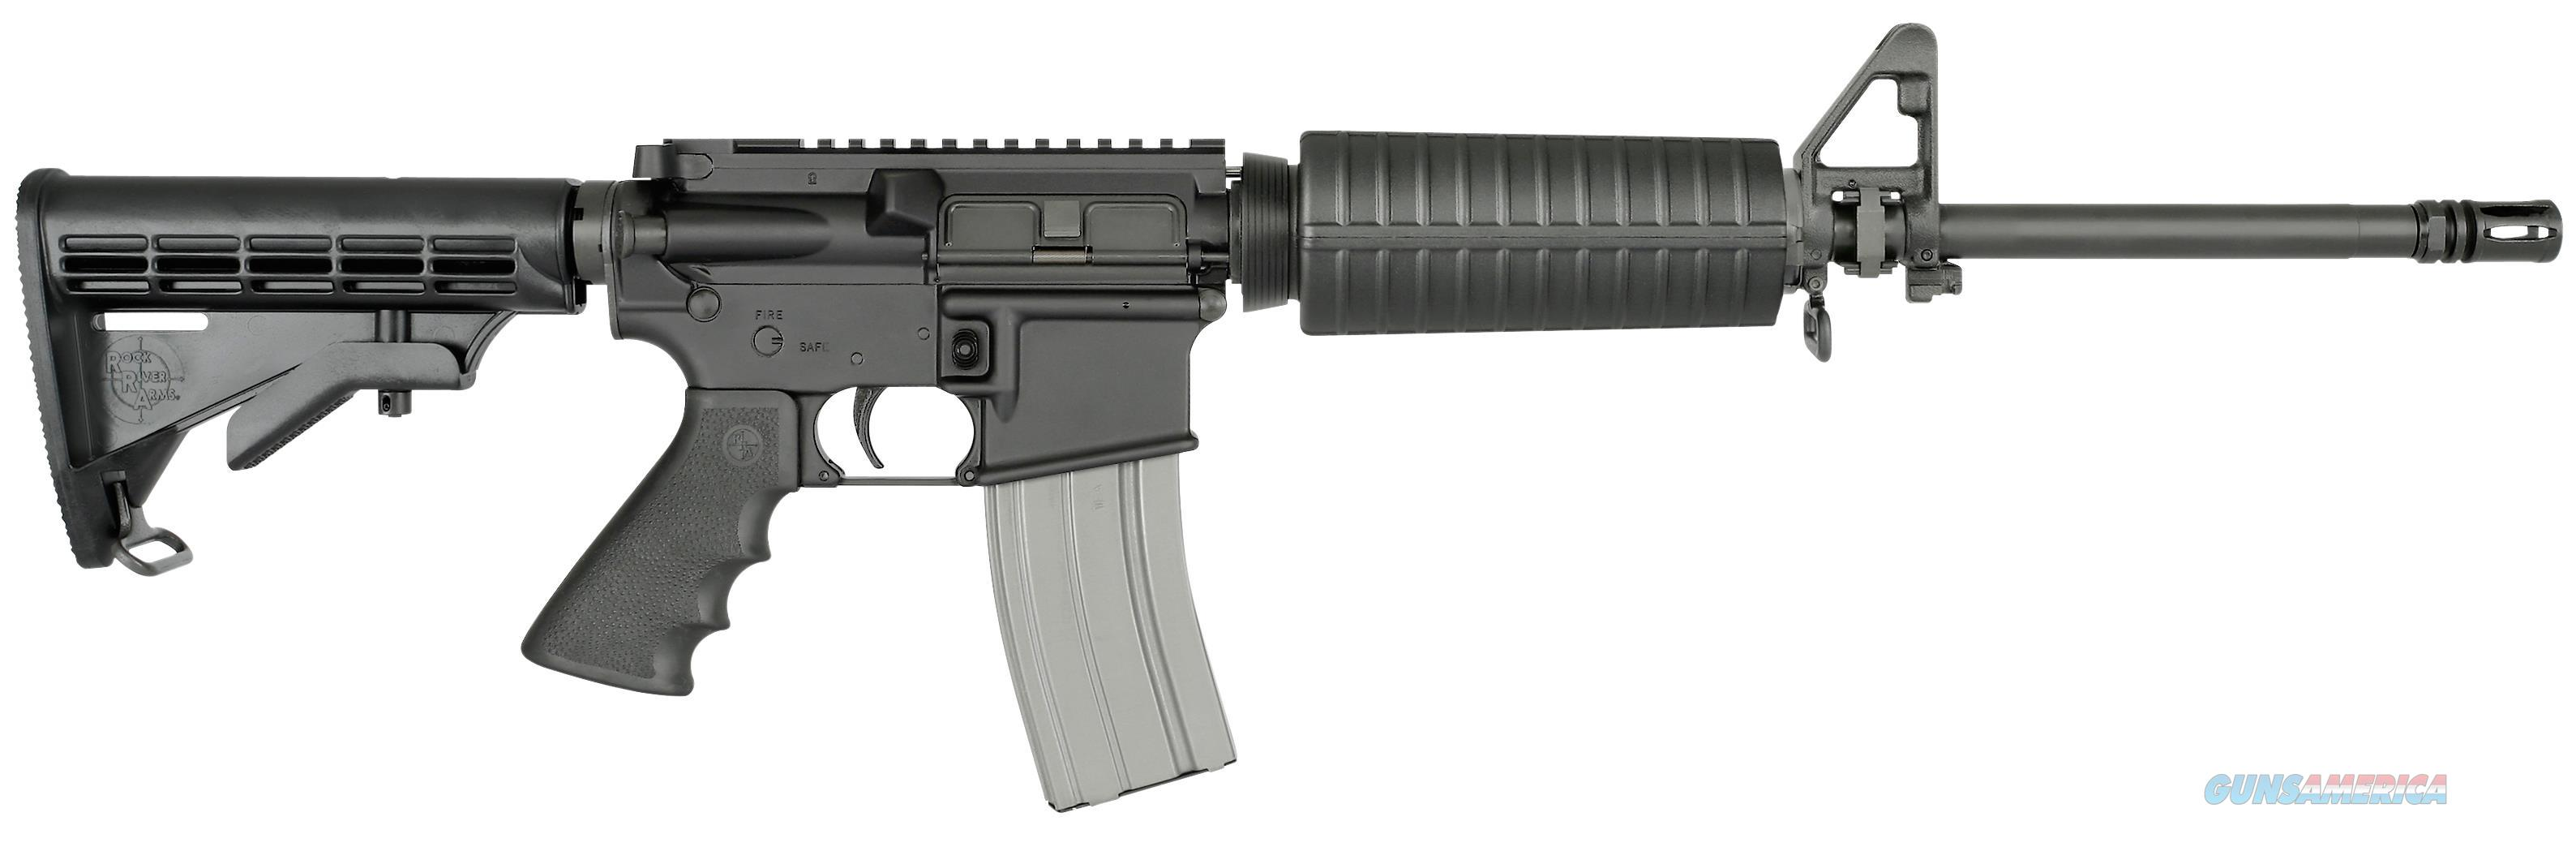 "Rock River Arms Ar1207 Lar-15 Tactical Car W Ergo Grip Chrome Lined Barrel Semi-Automatic 223 Remington/5.56 Nato 16"" 30+1 6-Position Black Stk Black AR1207  Guns > Rifles > Rock River Arms Rifles"